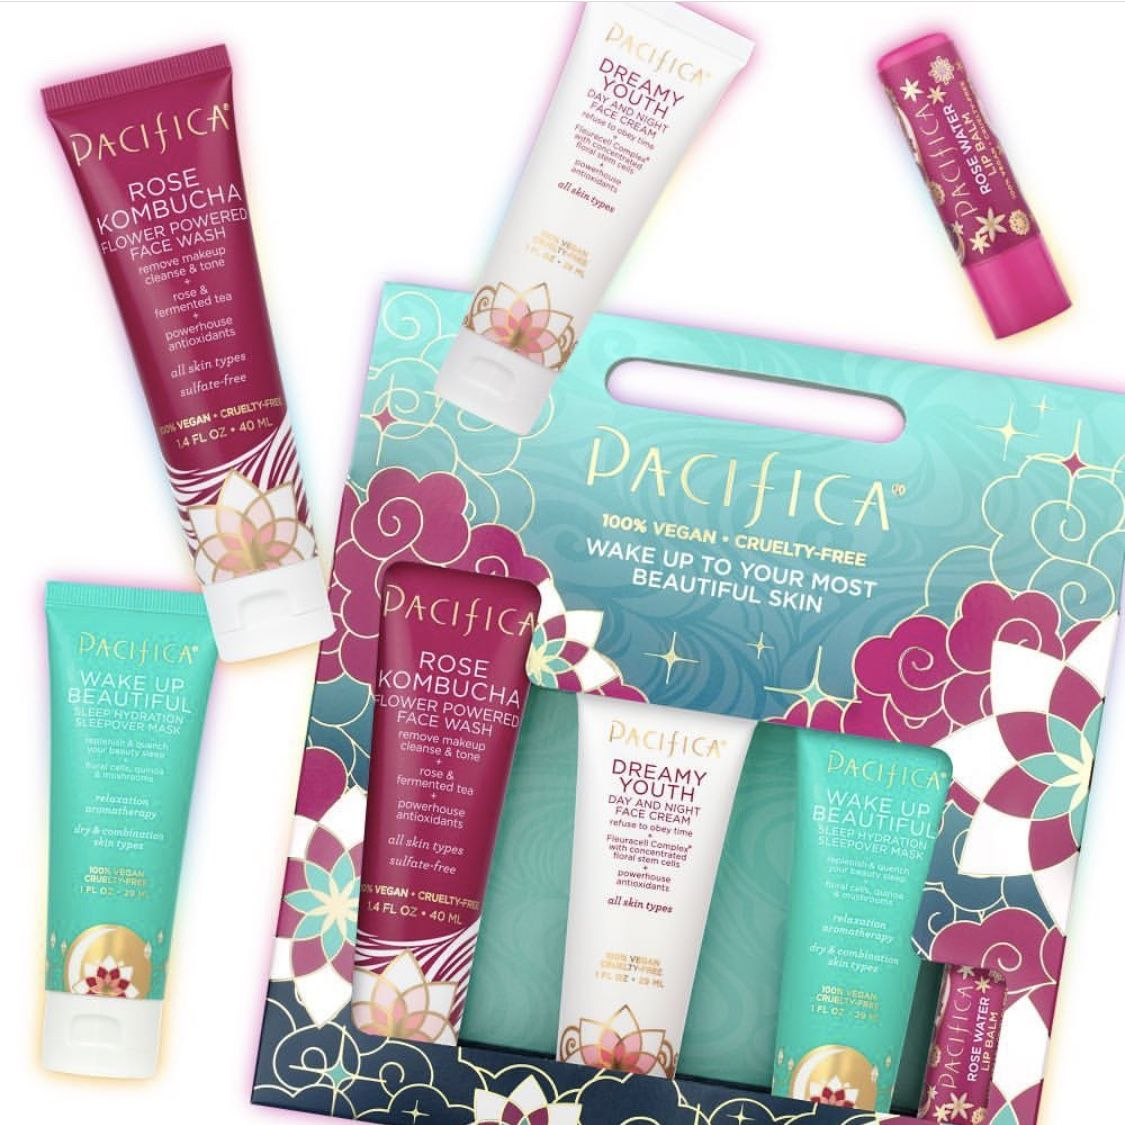 Don T Let Your Friend S Skin Be Thirsty Girl Add A Little Flower Power To Their Holiday And Give The Gift Of R Skin Care Collection The Balm Sun Damaged Skin